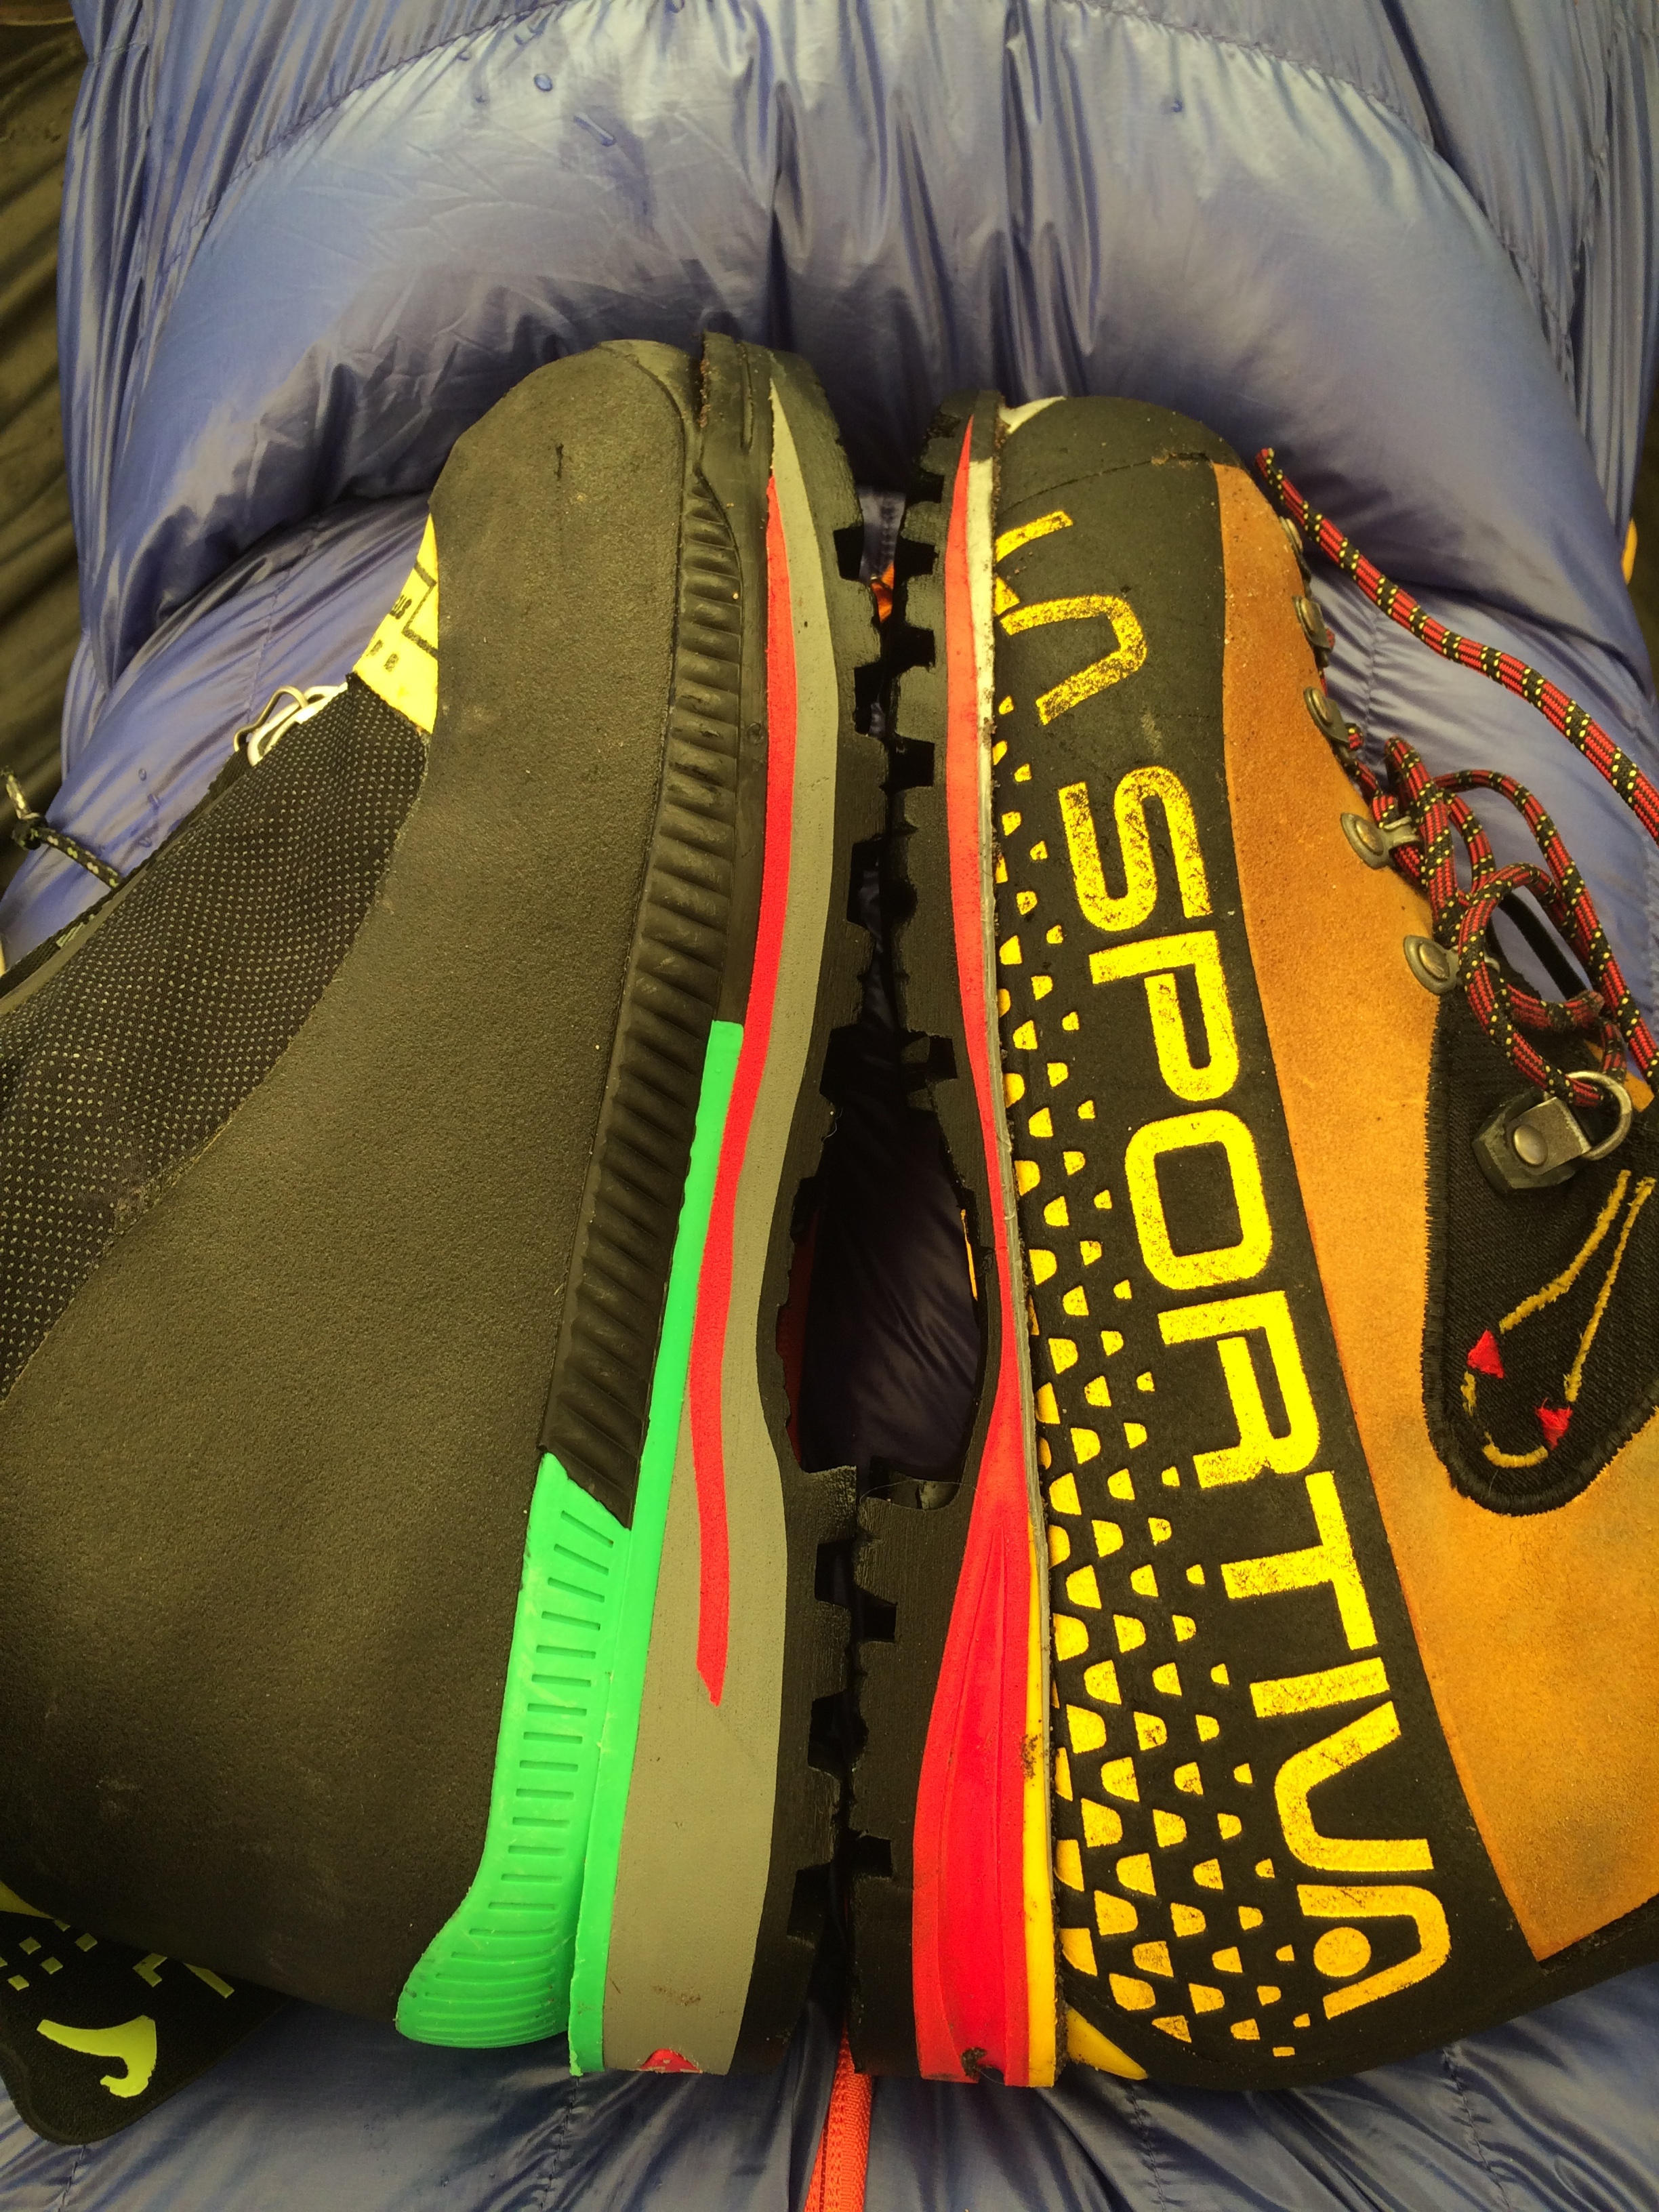 The sole length of the Stetind (left), which fits an American size 9.5 foot, compares to the length of the La Sportiva Nepal Cube, which fits a size 11.5. [Photo] Mike Lewis collection